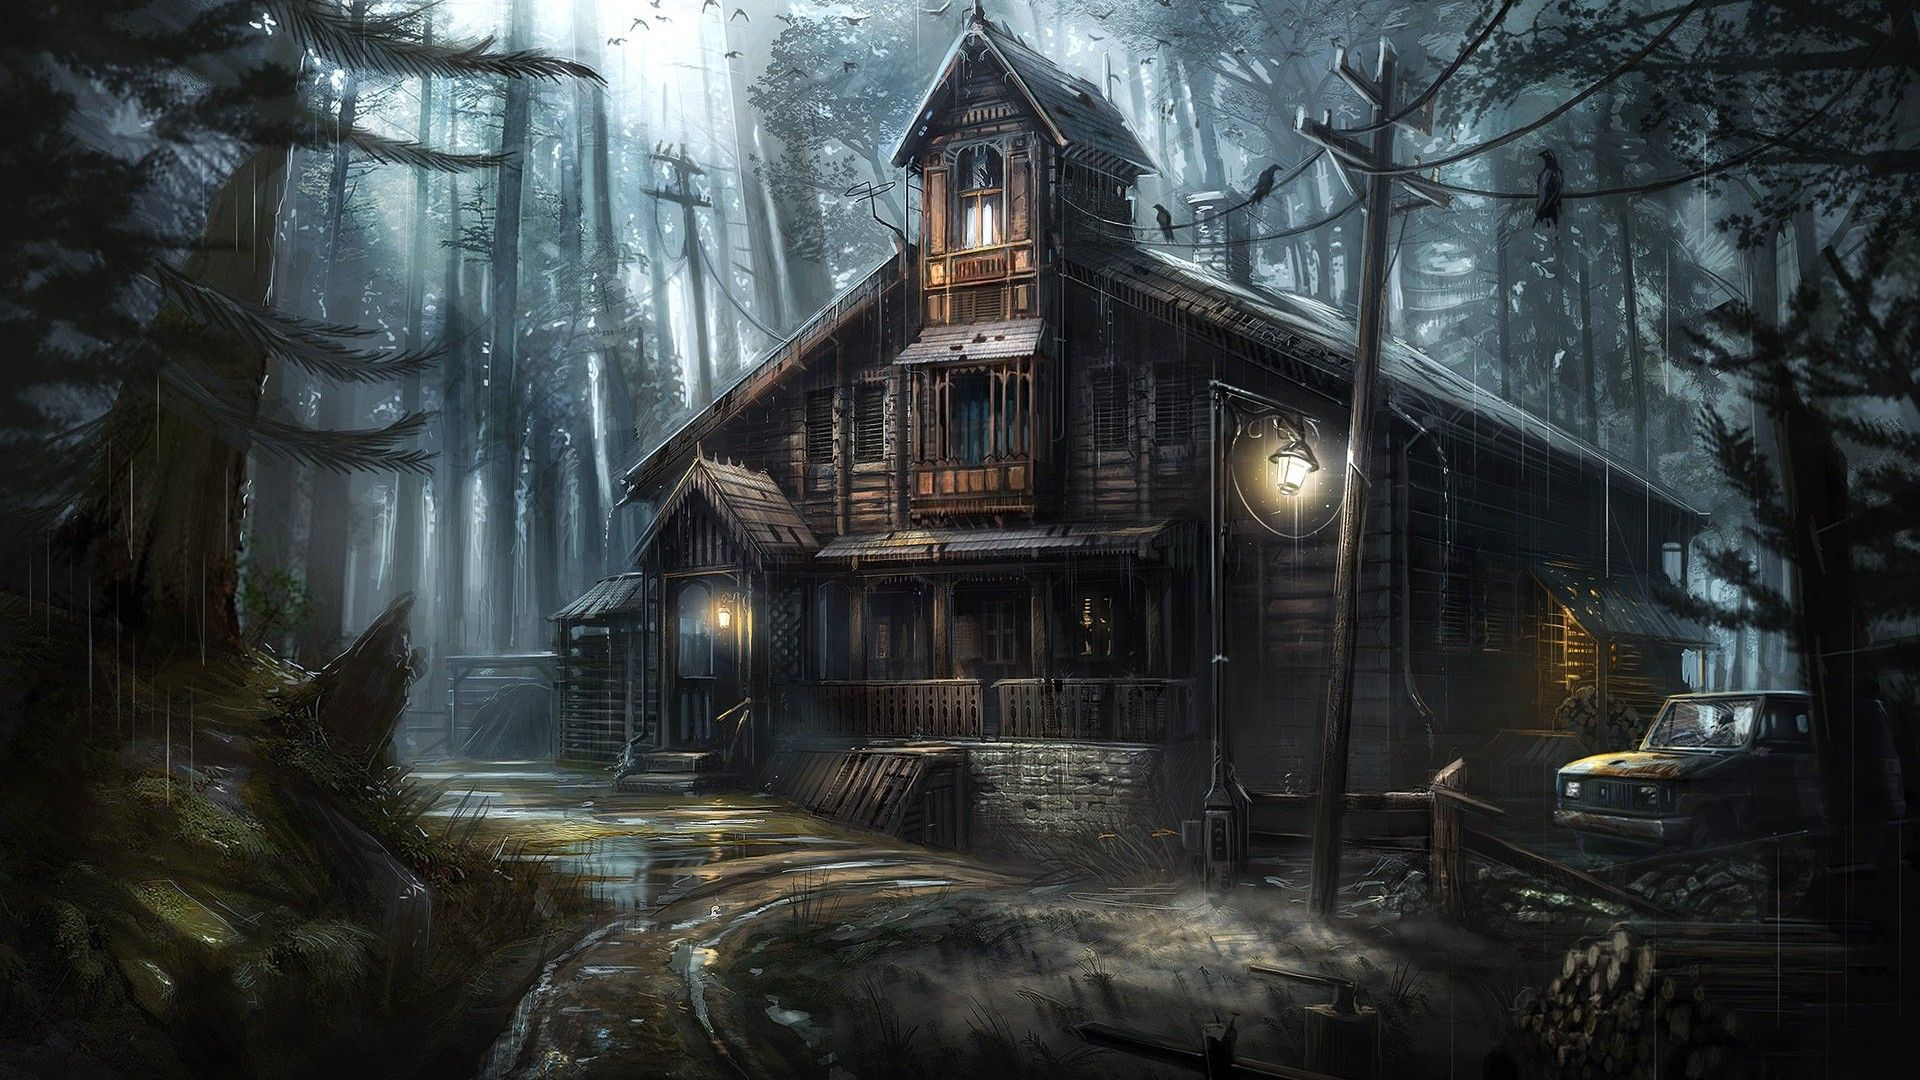 Building In The Forest Art Fantasy, Old House, Gloomy Mansion background wallpaper